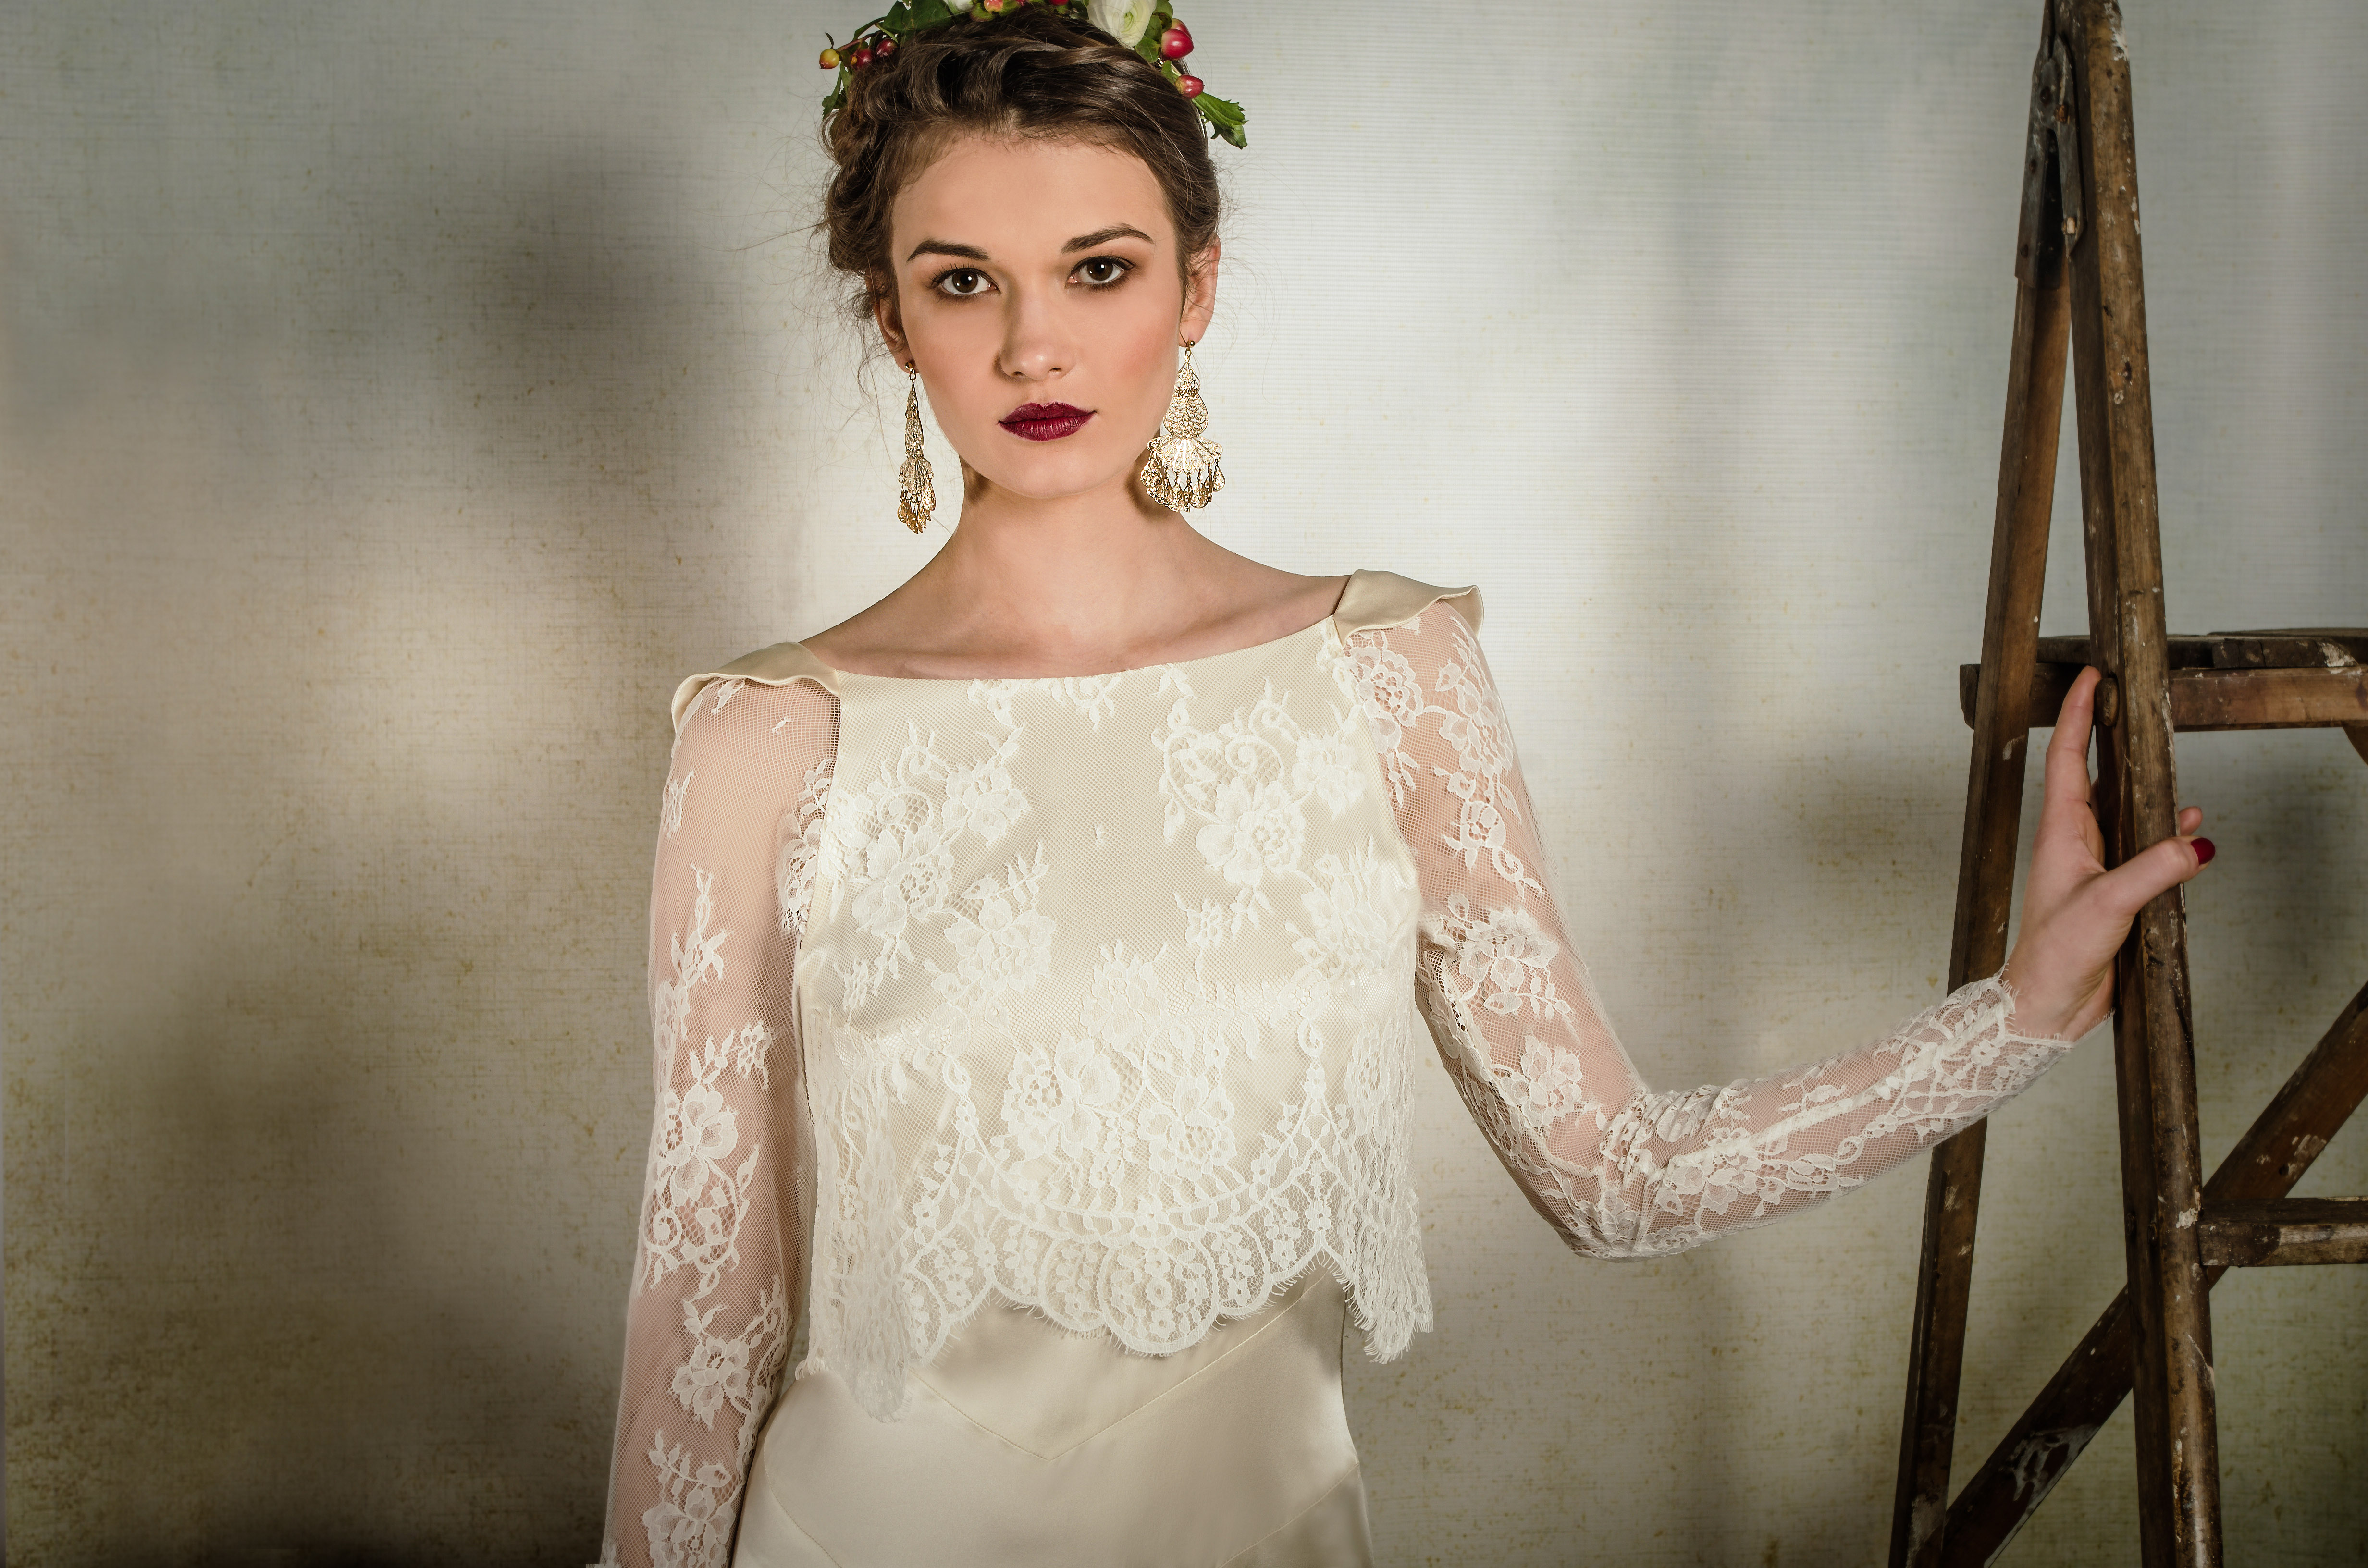 Wedding Gowns Pic: Belle & Bunty Wedding Dresses For The Stylish Bride